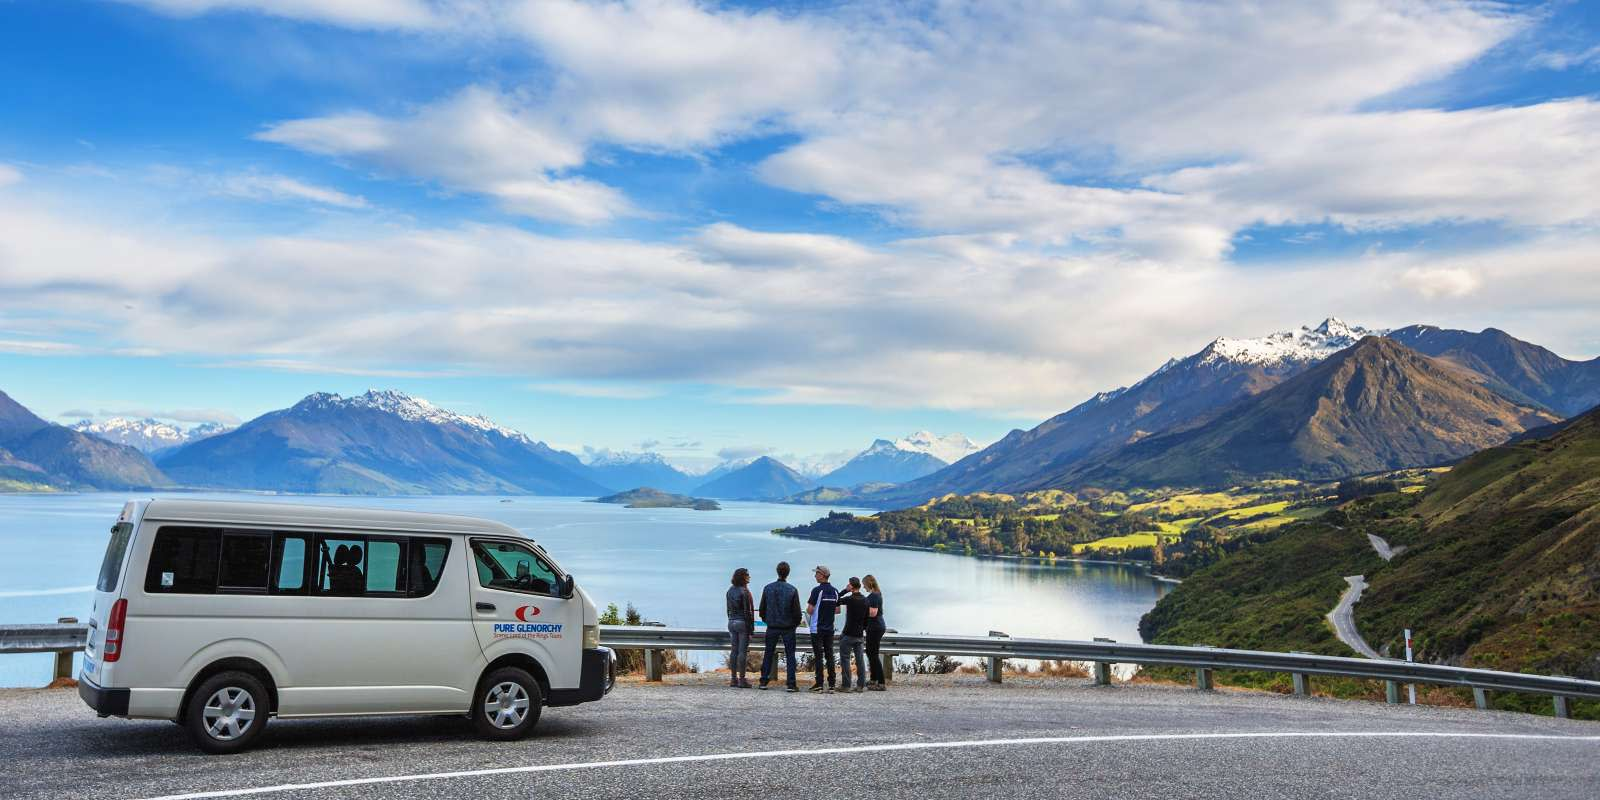 Travel along New Zealand's most scenic highway from Queenstown to Glenorchy you will have the opportunity to stop and photograph incredible vistas.